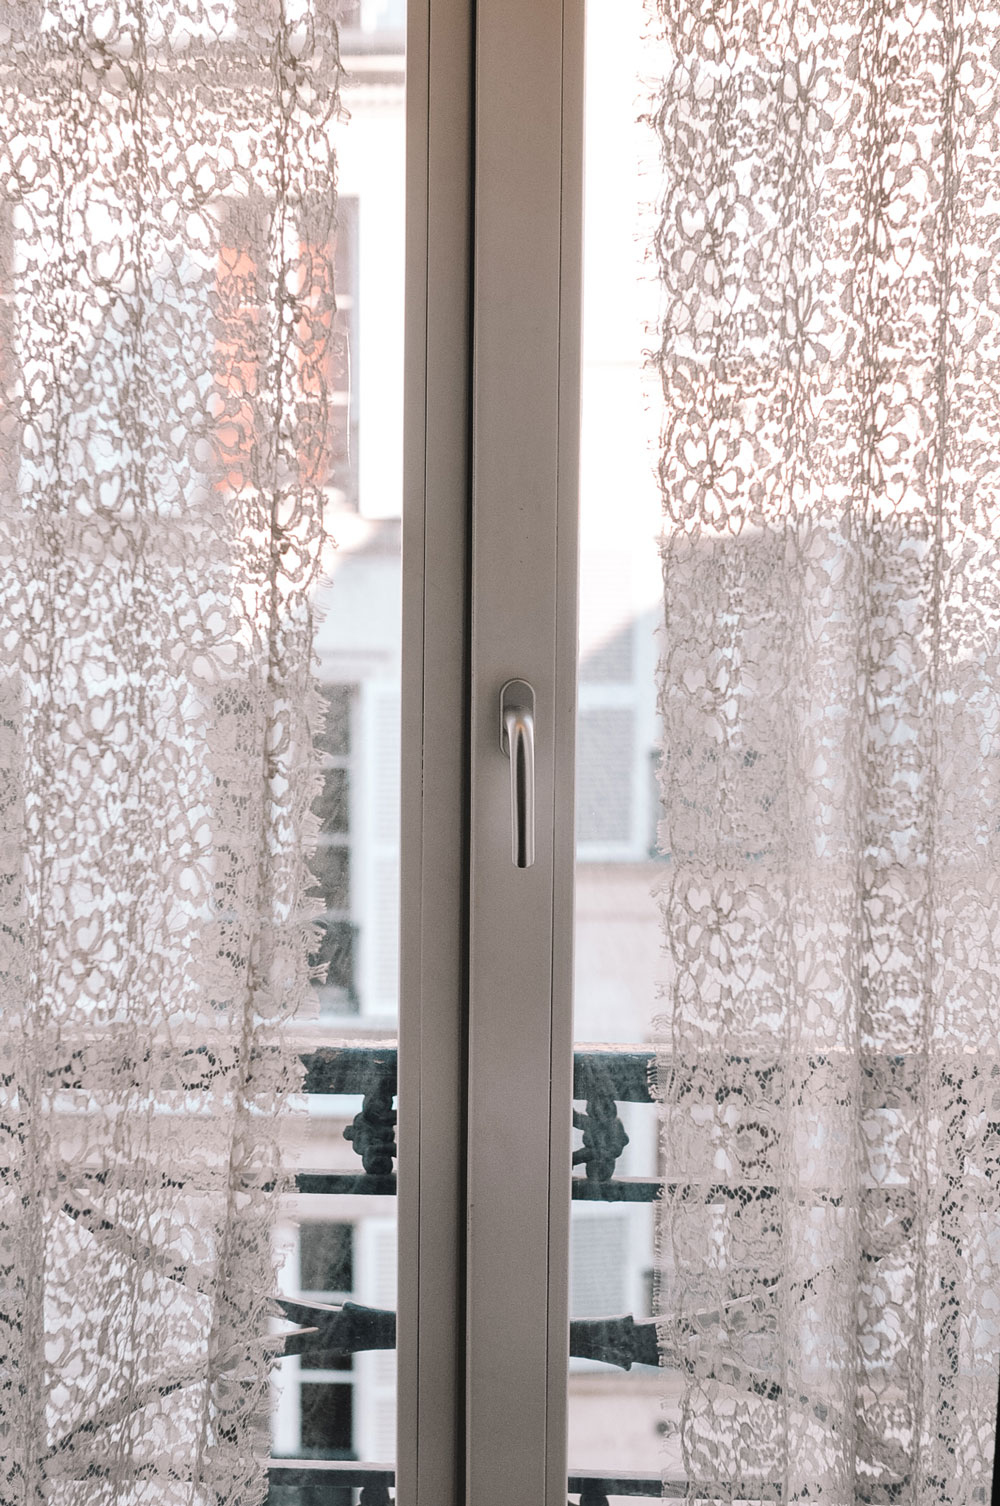 Lace curtains frame the beautiful view at Hotel Chavanel